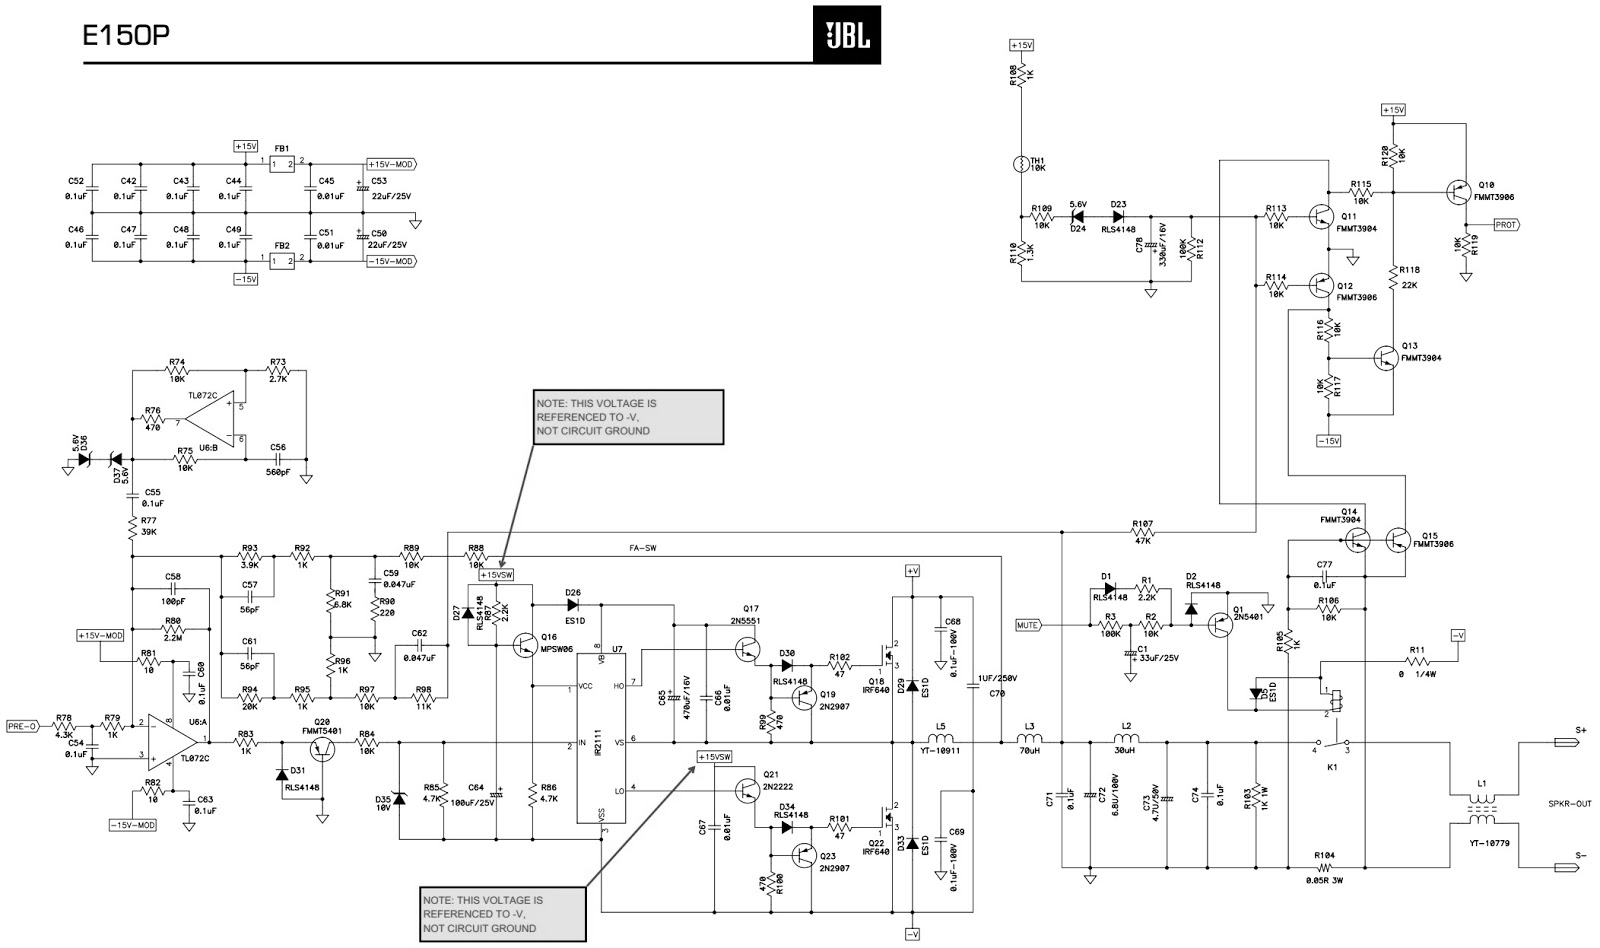 jbl 10 inch powered subwoofer e150p northridge e series circuit jbl powered subwoofer schematic diagram [ 1600 x 948 Pixel ]